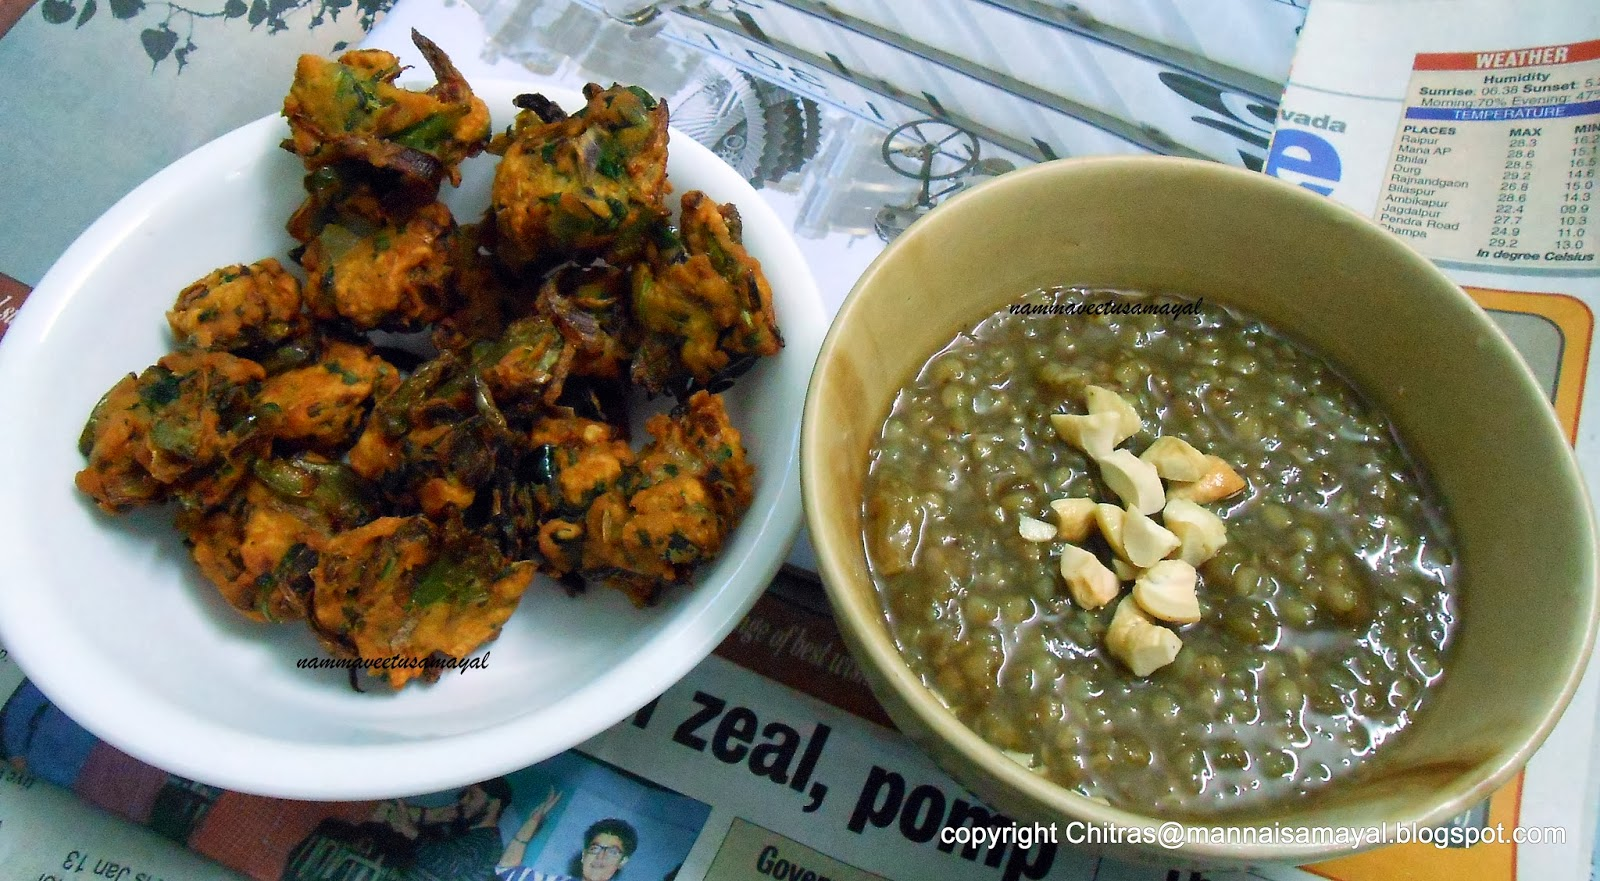 Buckwheat Sakkarai Pongal [ Buckwheat Sweet Pongal ] served with Pakoda